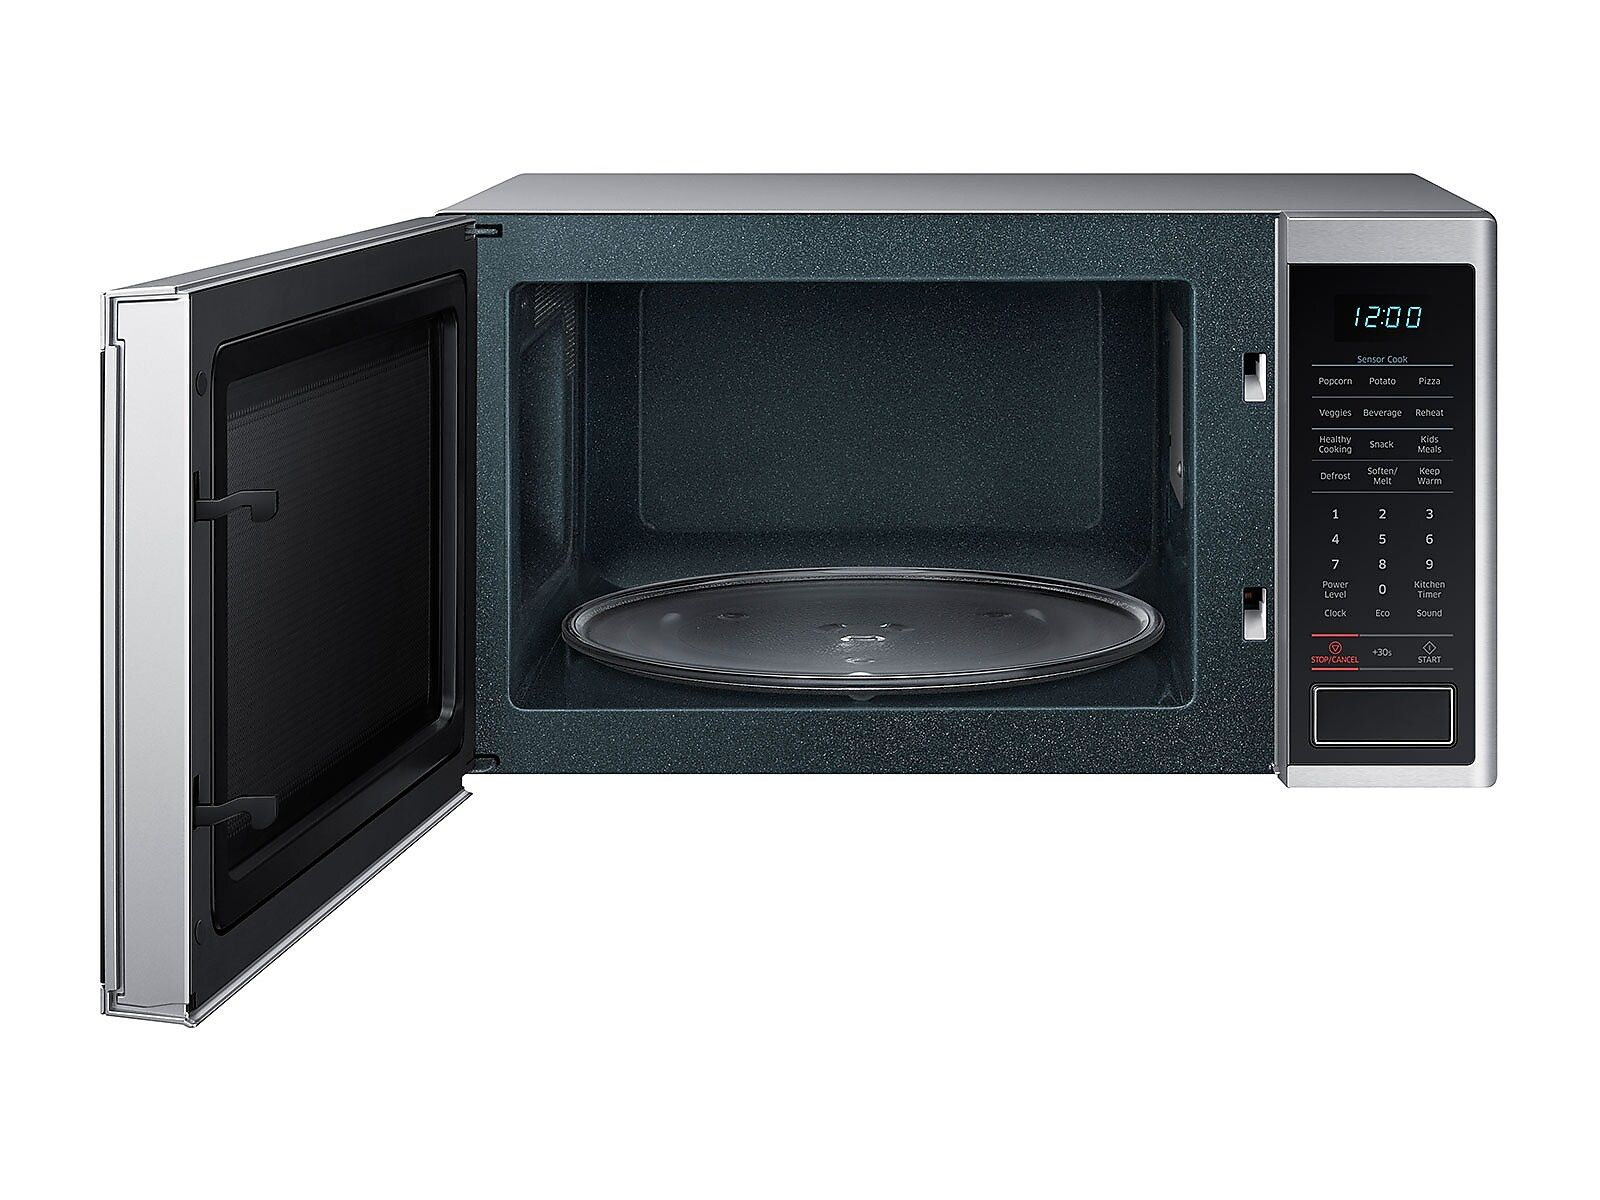 Samsung 1 4 Cu Ft Countertop Microwave With Sensor Cooking In